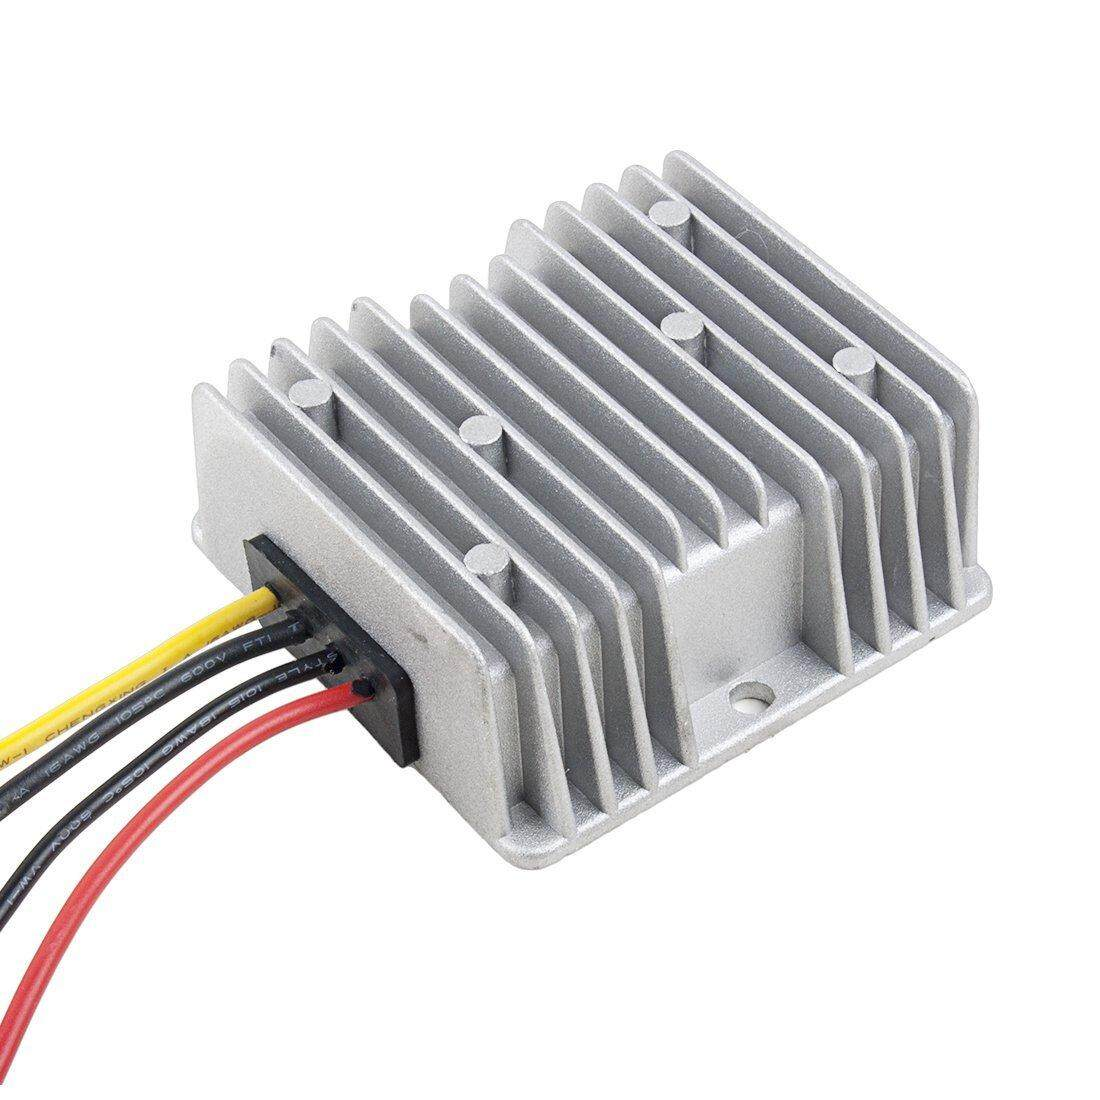 Power Converter Regulator Dc12v/24v Step-Down To Dc6v 15a 90w Waterproof Voltage Convert Transformer By Lapurer.